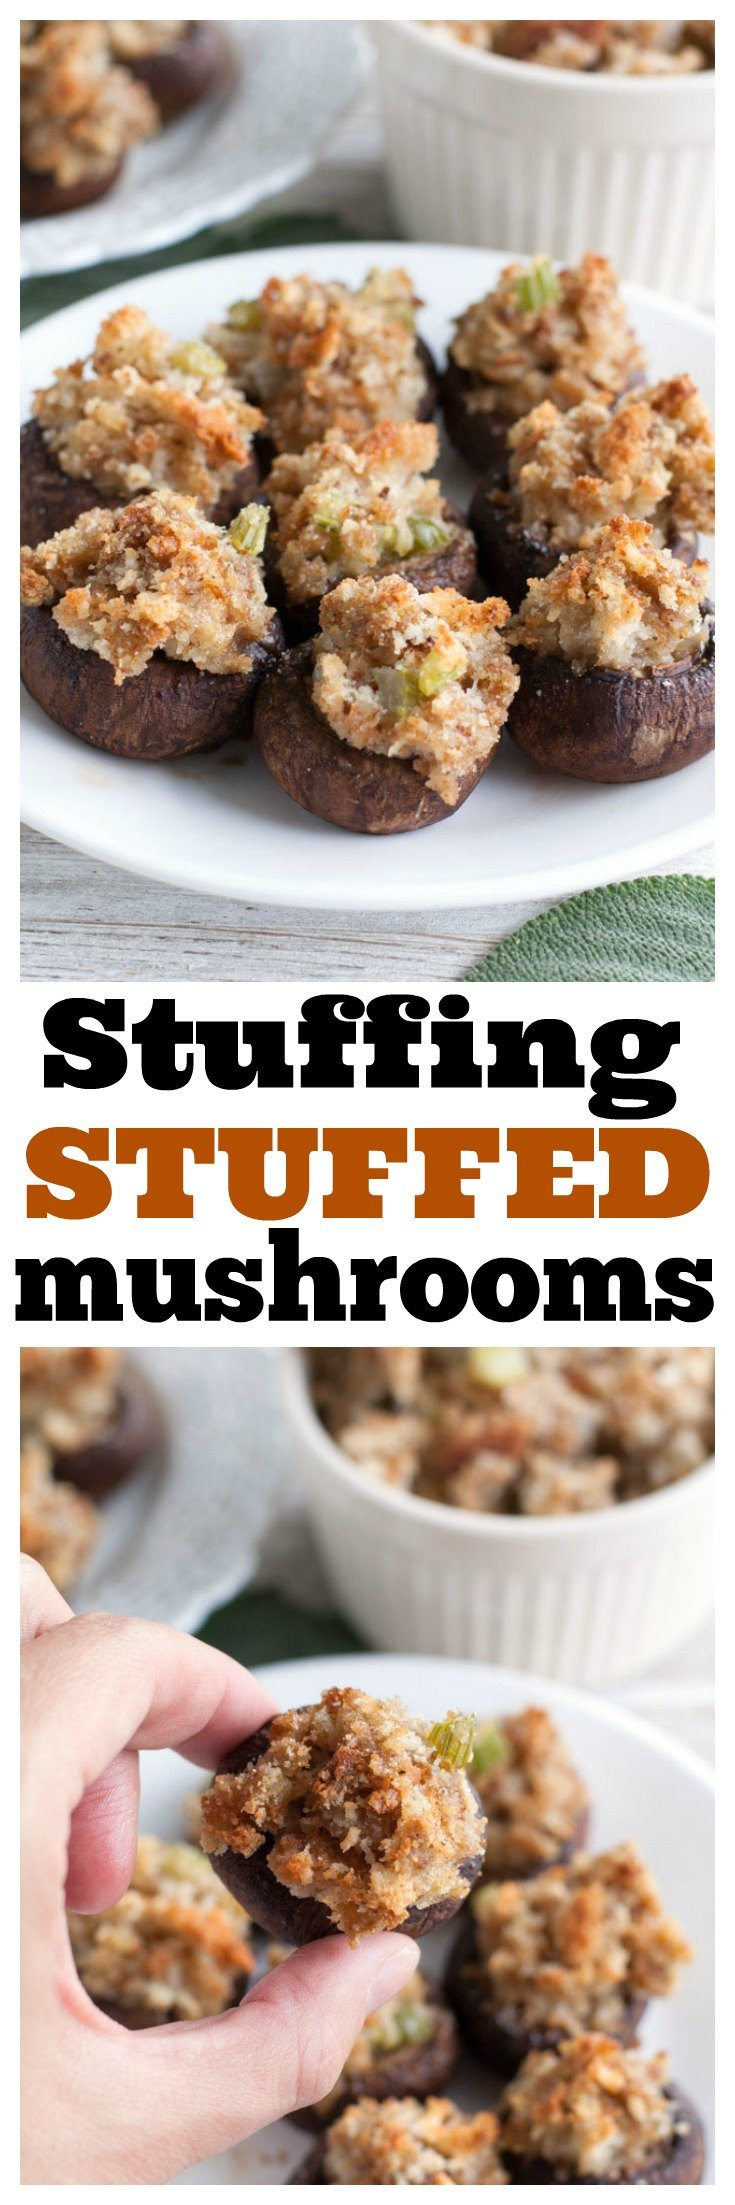 Stuffing Stuffed Mushrooms are the perfect appetizer for left over stuffing. Great for the holidays! #thanksgiving #stuffedmushrooms #stuffing #appetizers